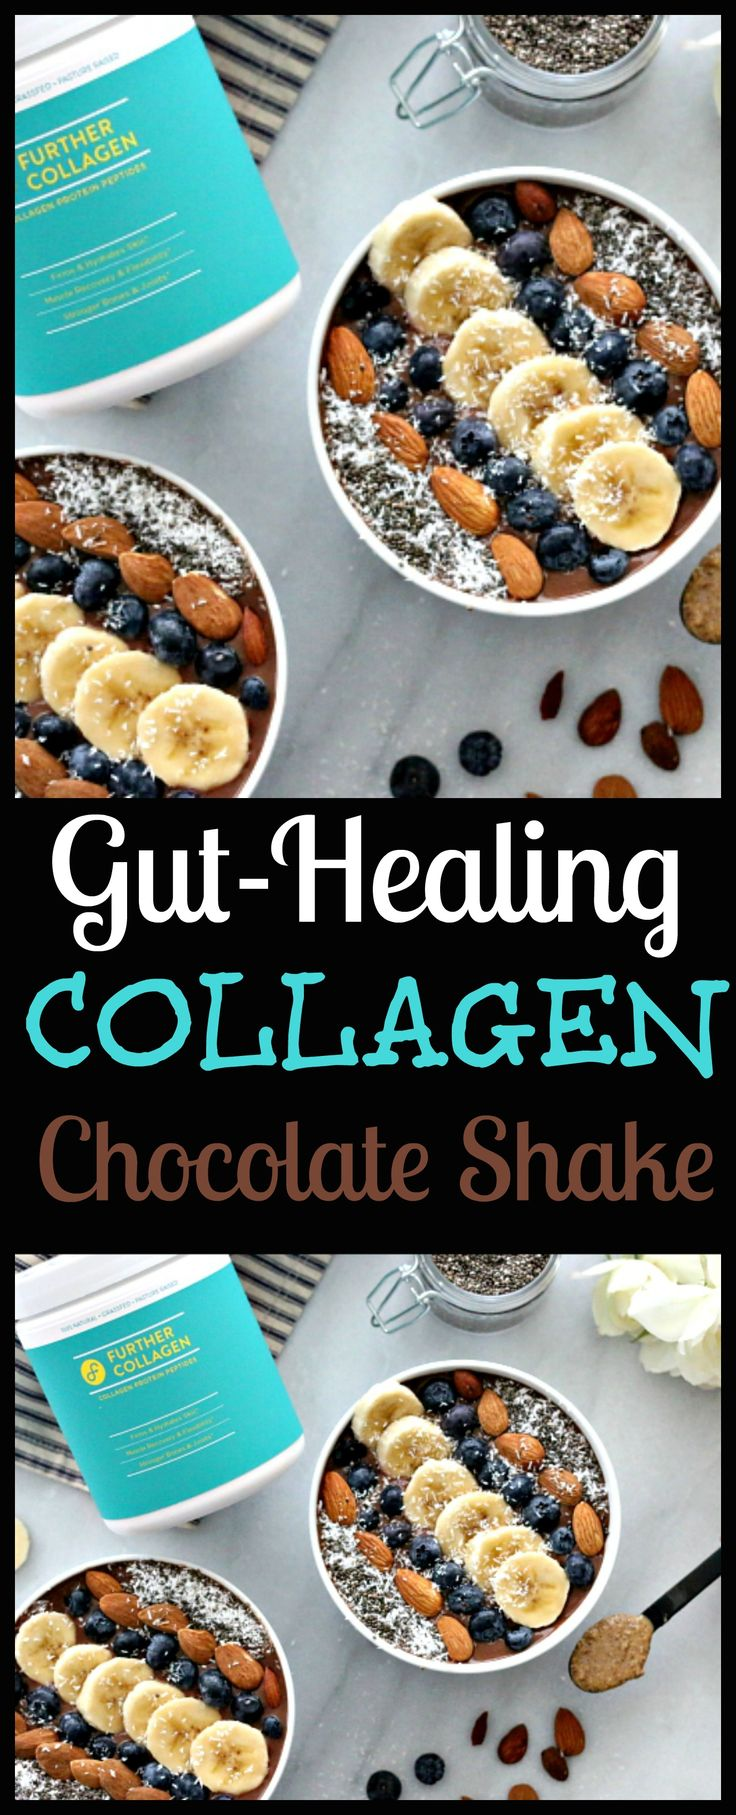 http://www.furtherfood.com/recipe/chocolate-power-protein-shake-collagen/